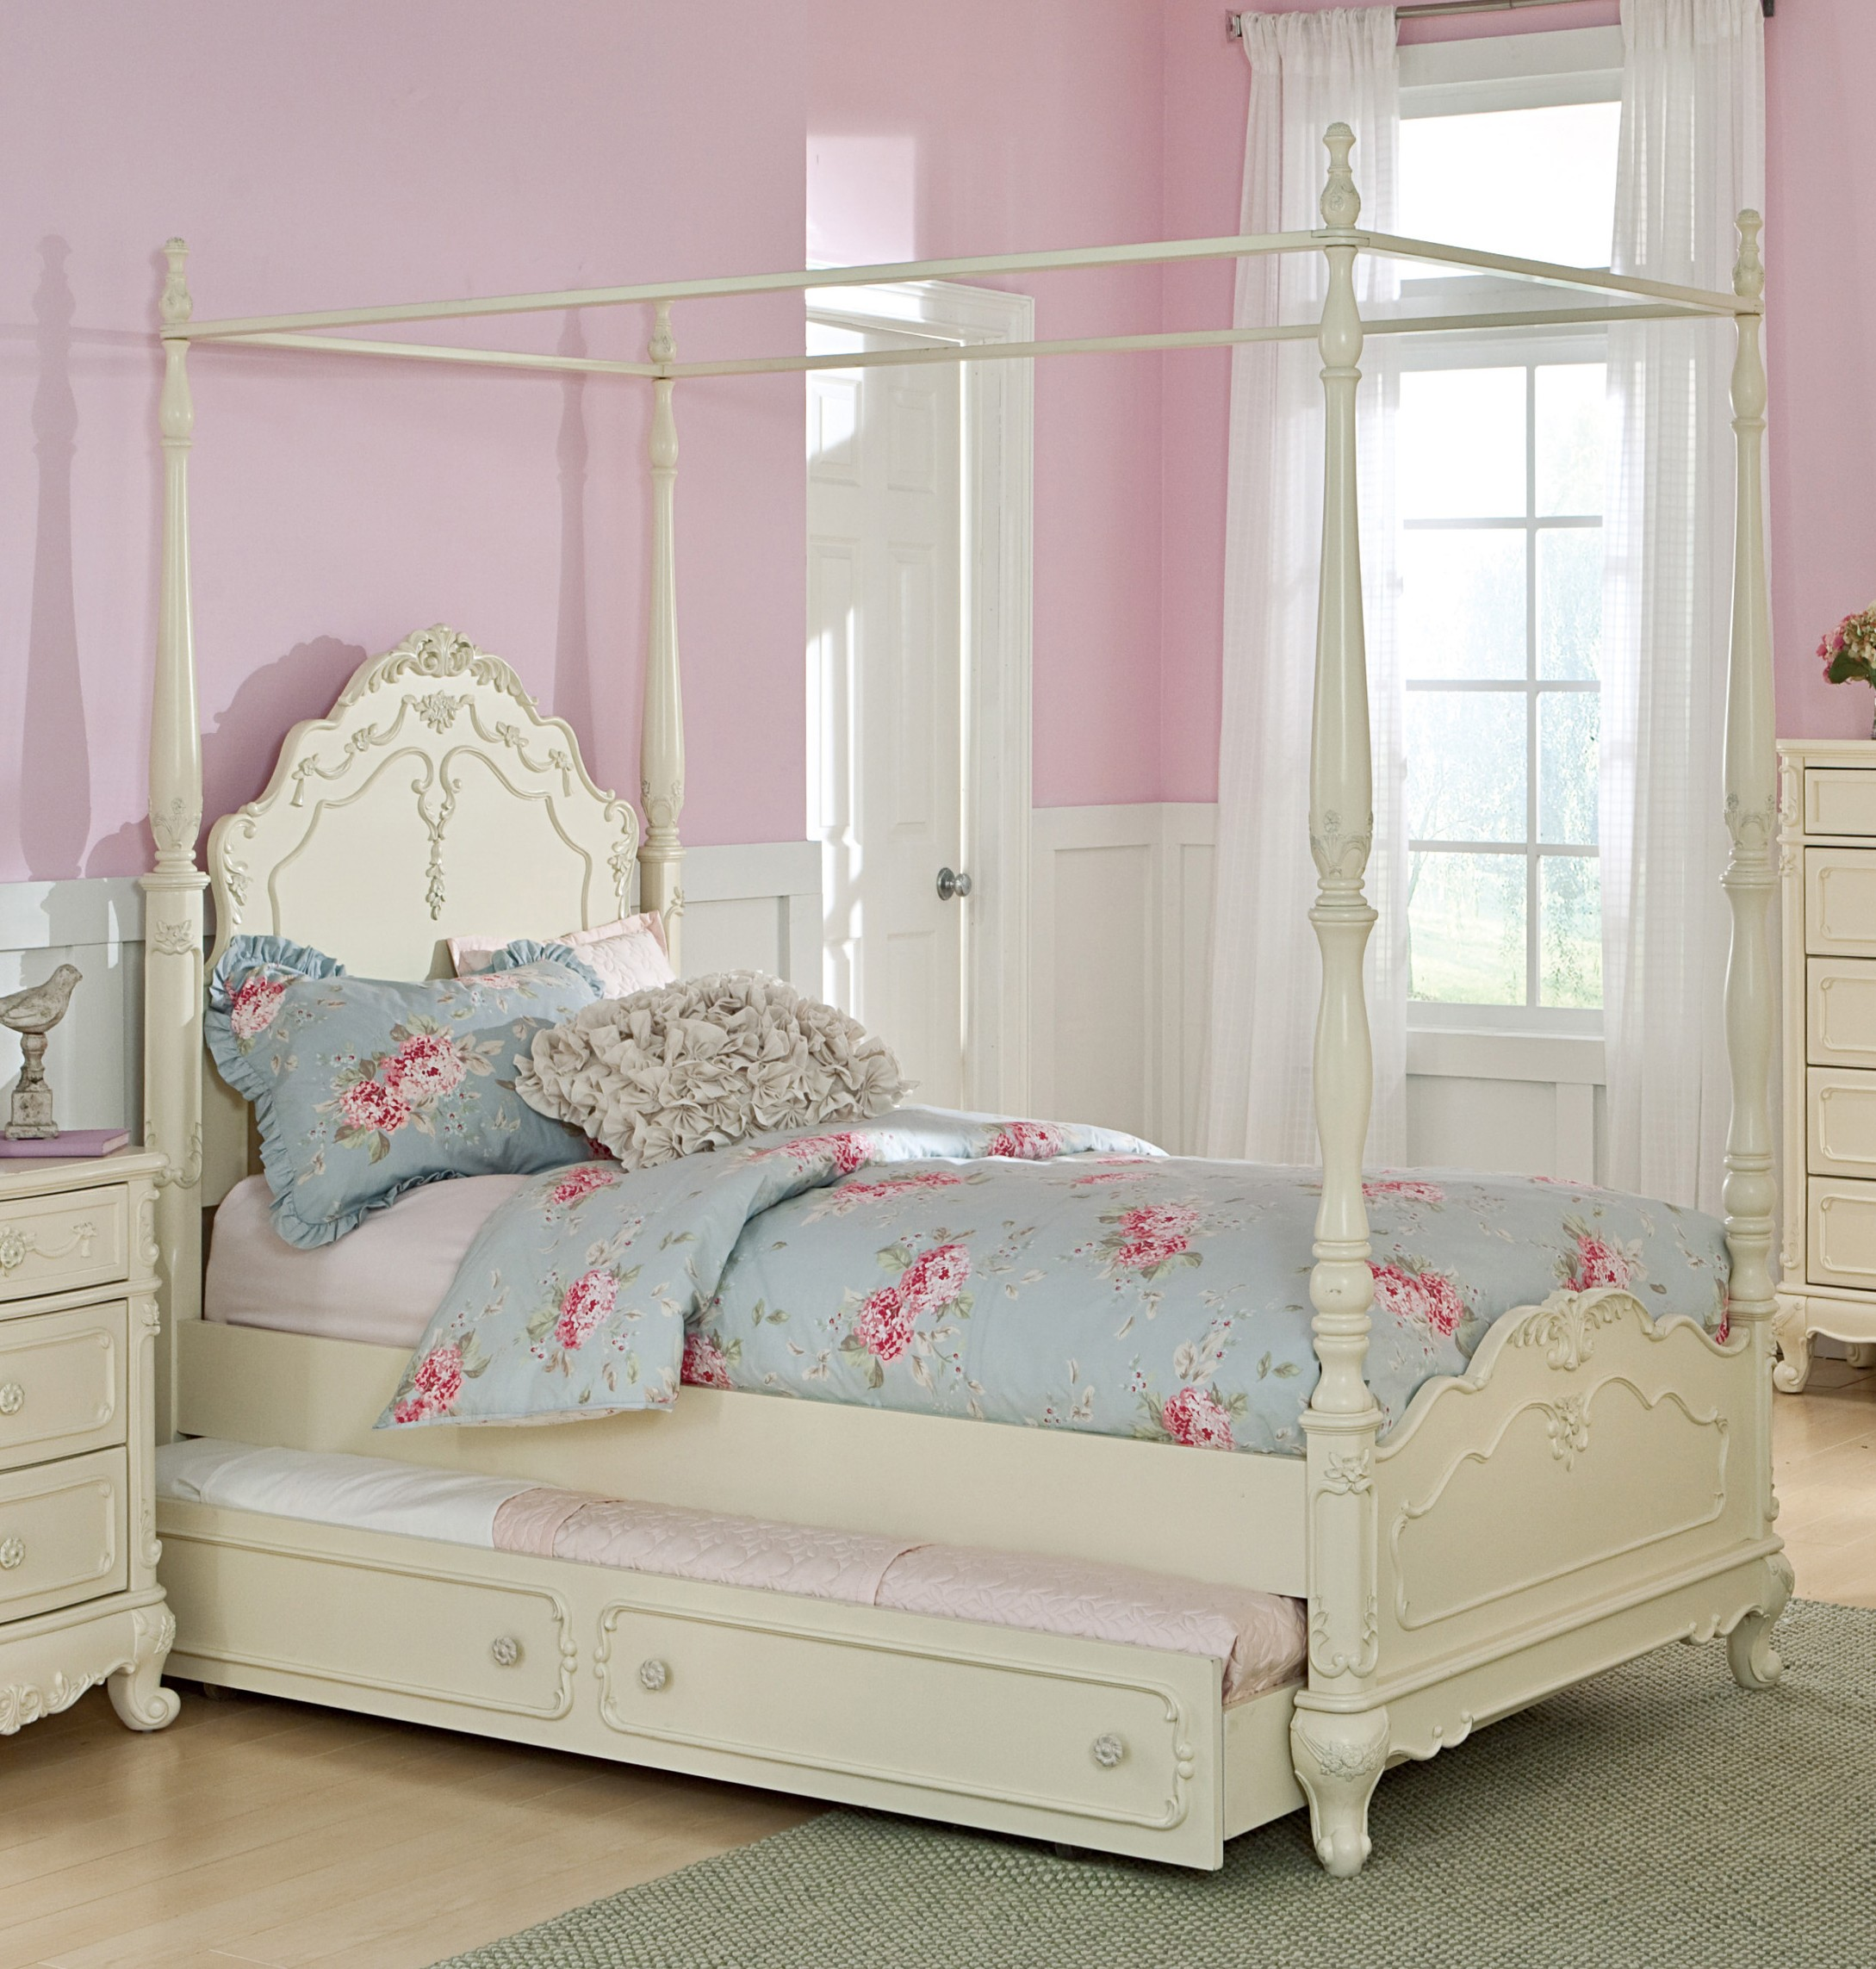 Canopy Beds For Girls Toddler Diy Little Roomscanopy Full Size & Toddler Canopy Beds For Girls - buythebutchercover.com